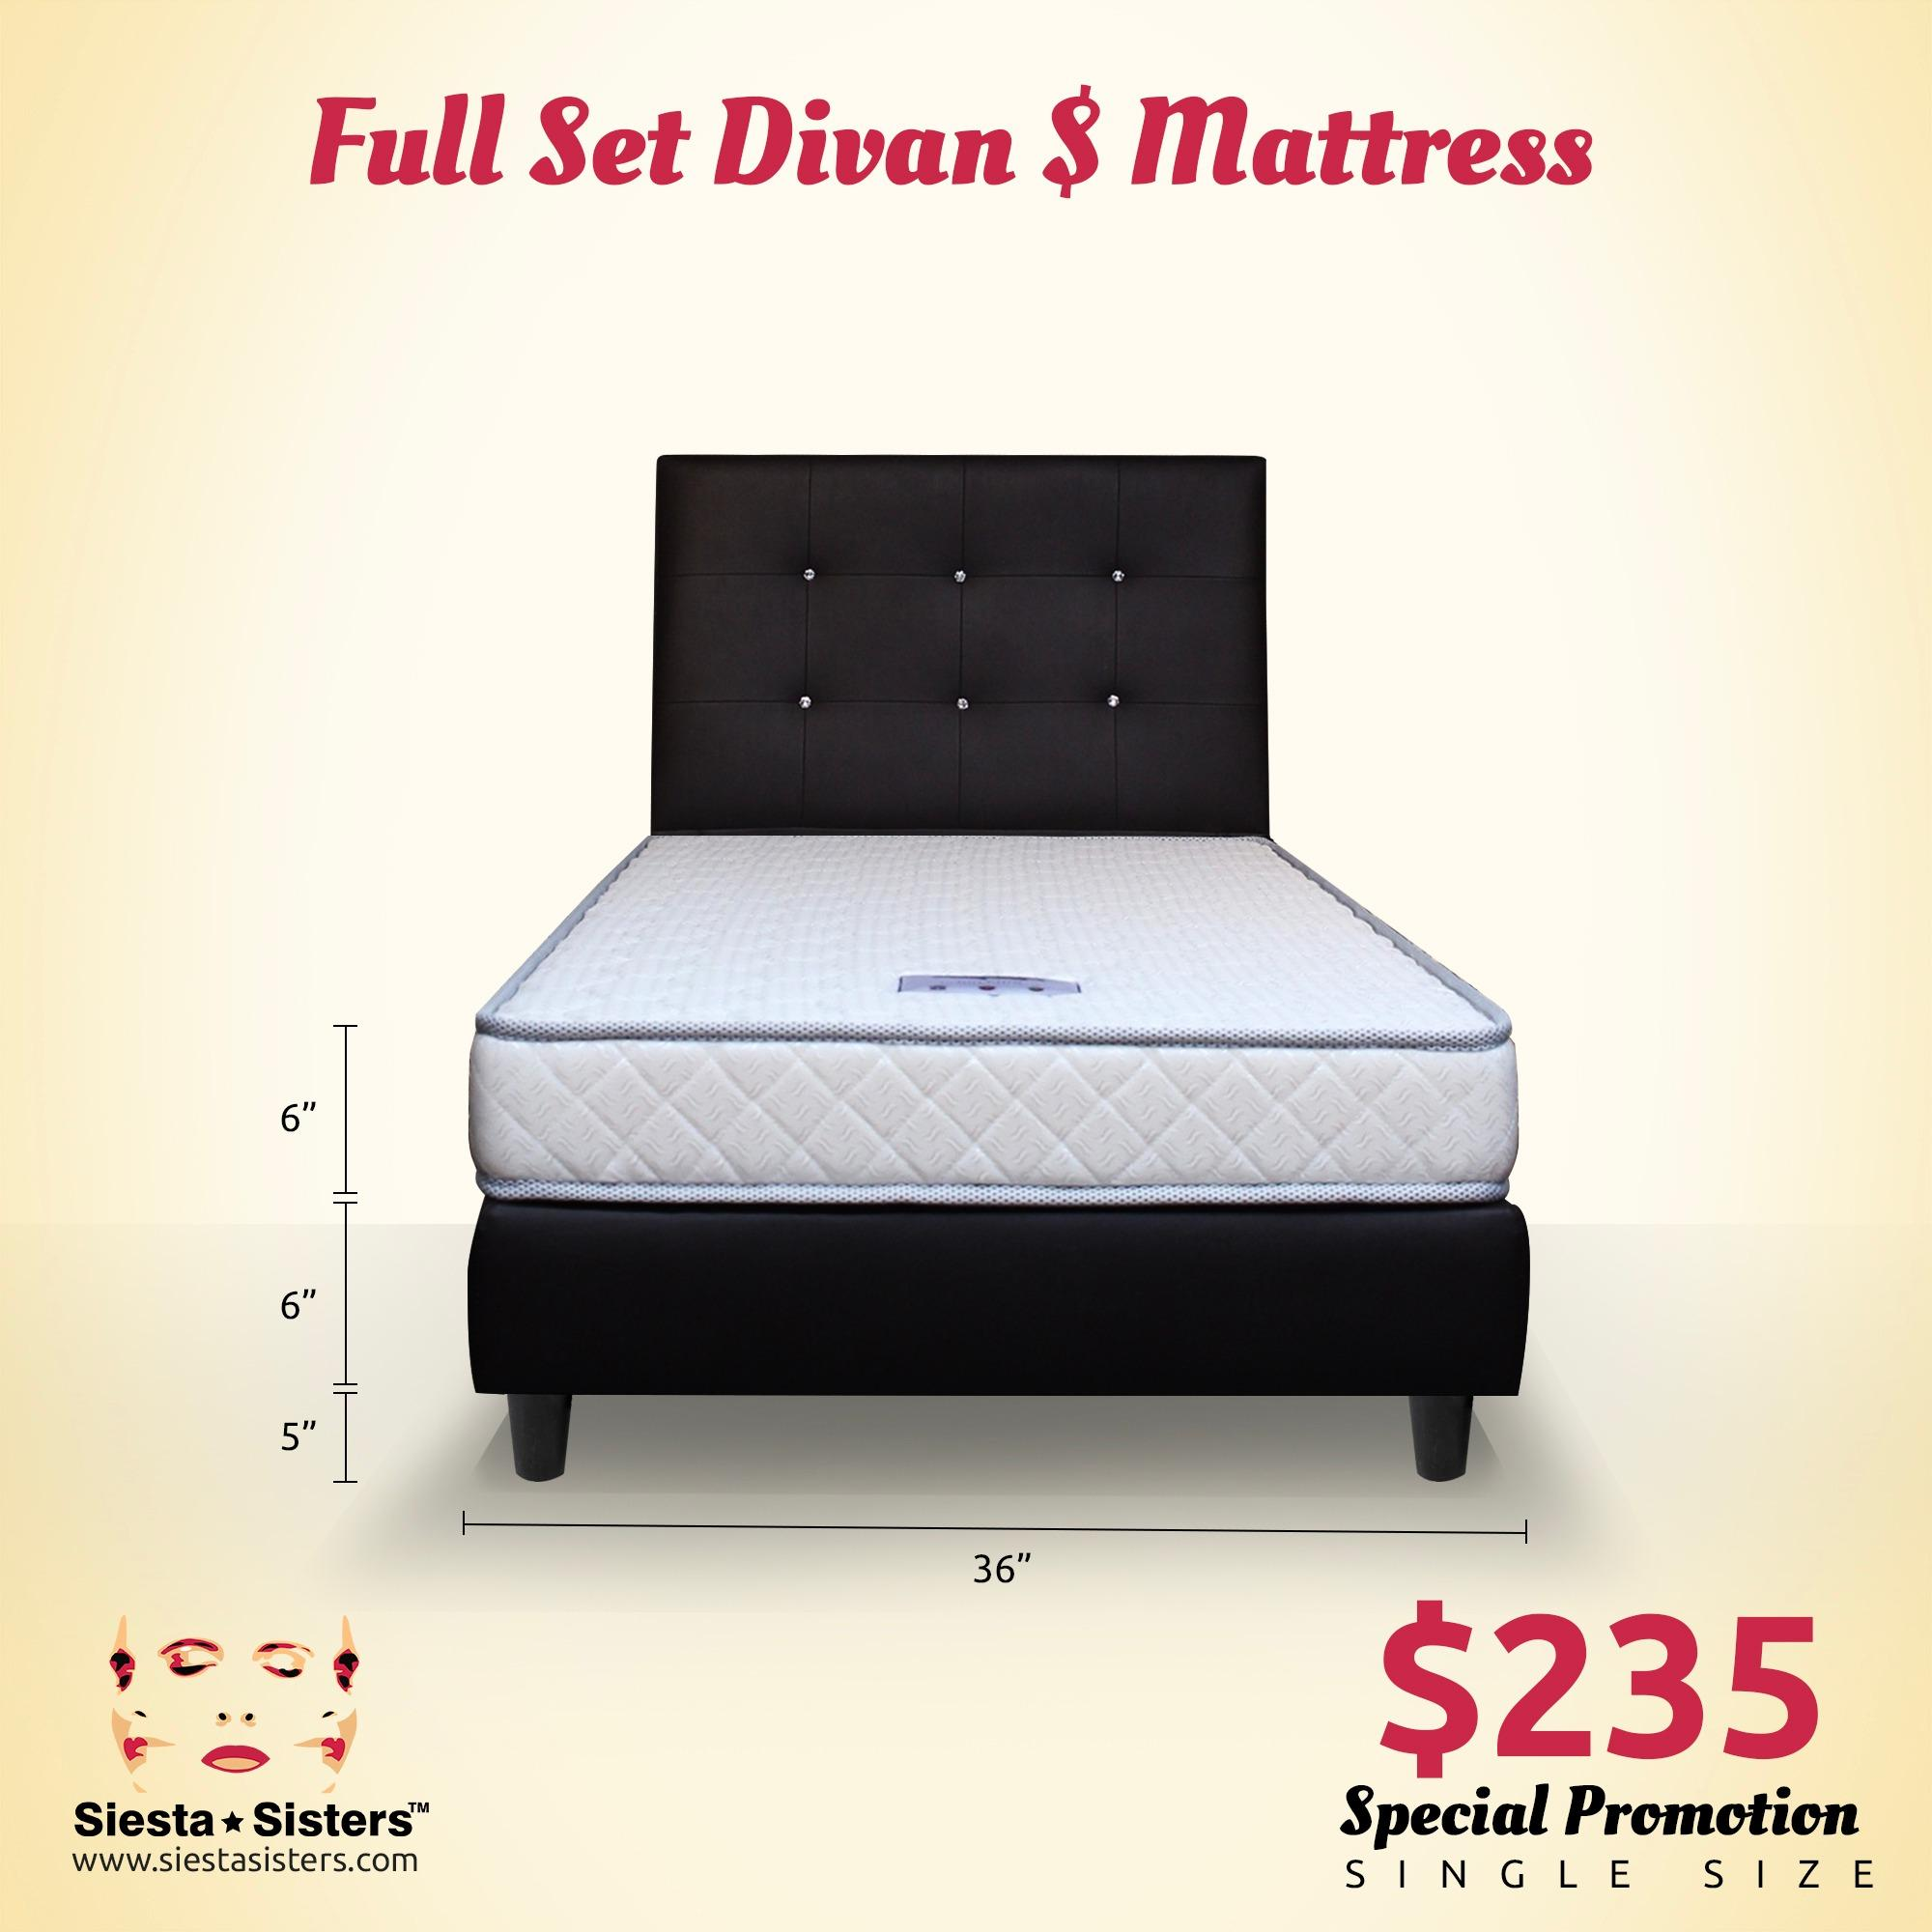 Who Sells Single Foam Mattress With Divan Bed Frame